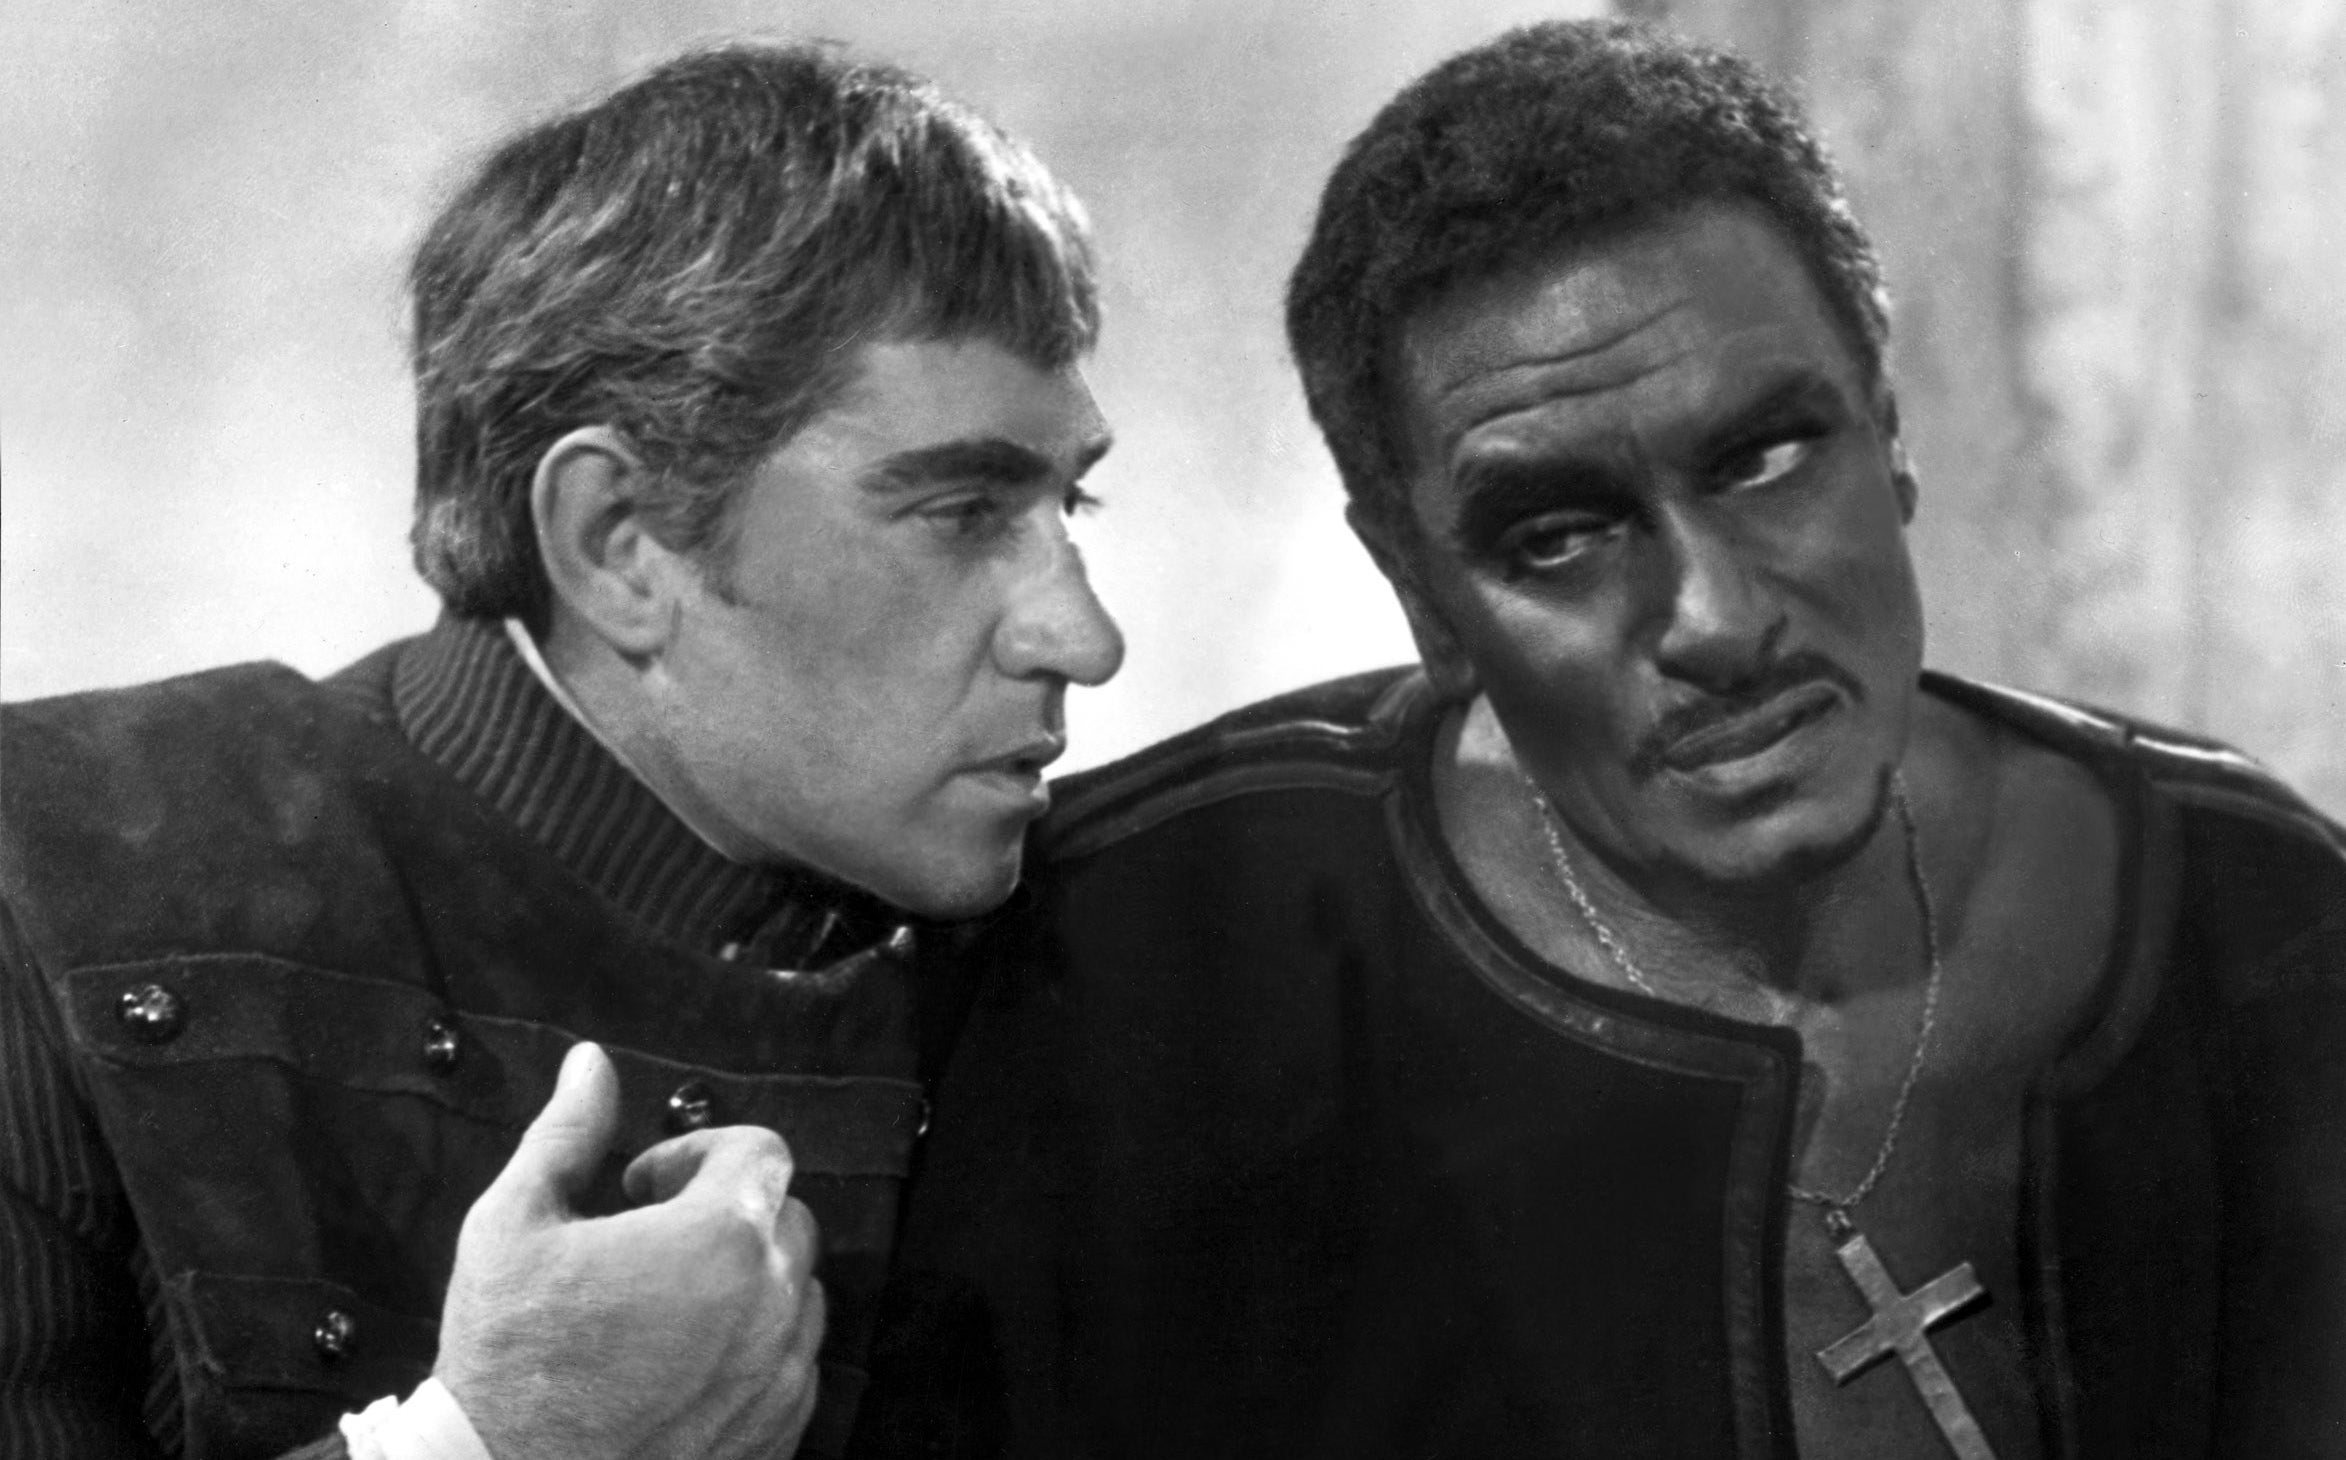 Laurence Olivier as Othello talking to Iago.